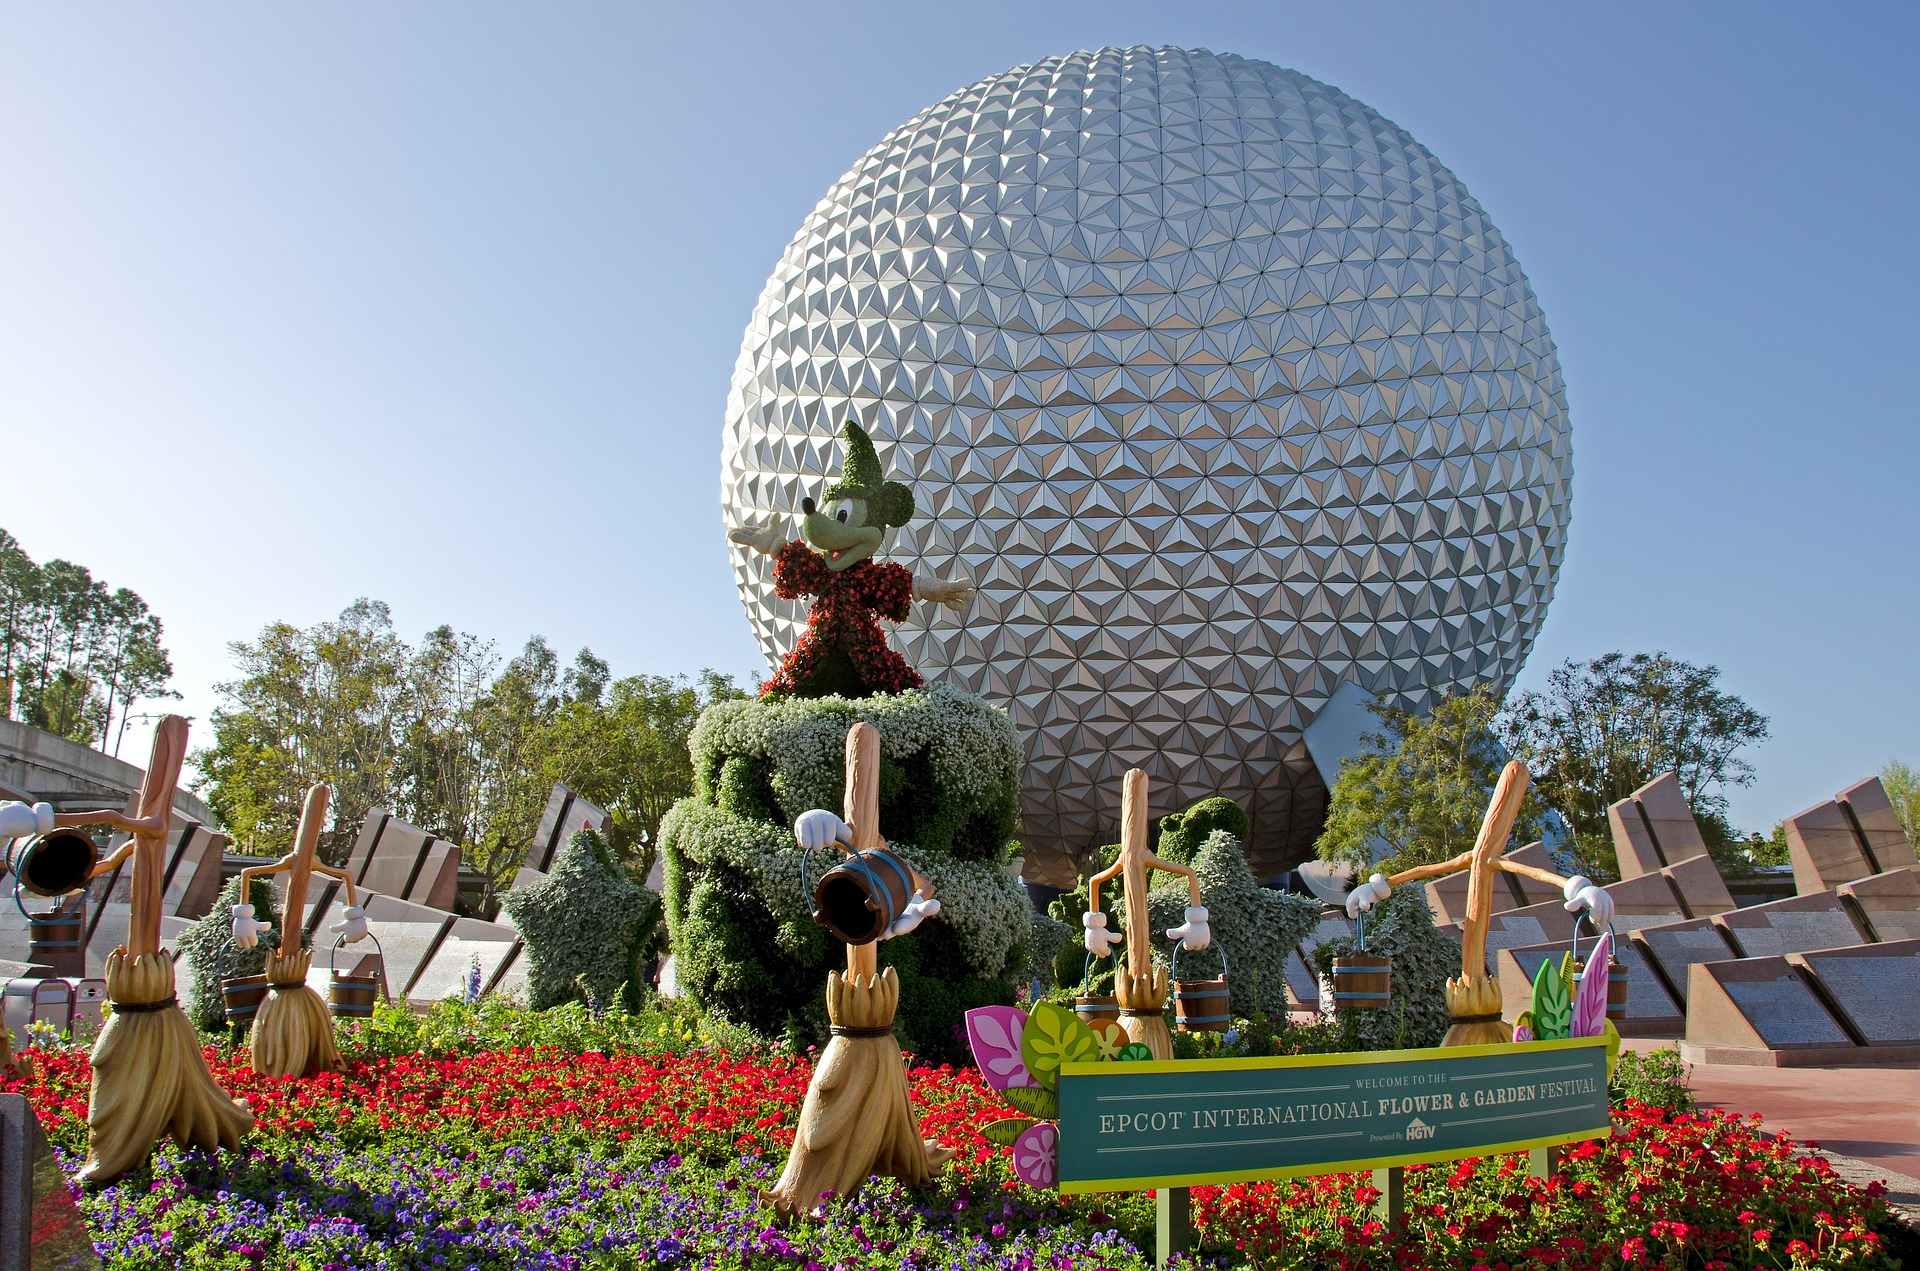 Epcot geodesic sphere behind mickey mouse in garden